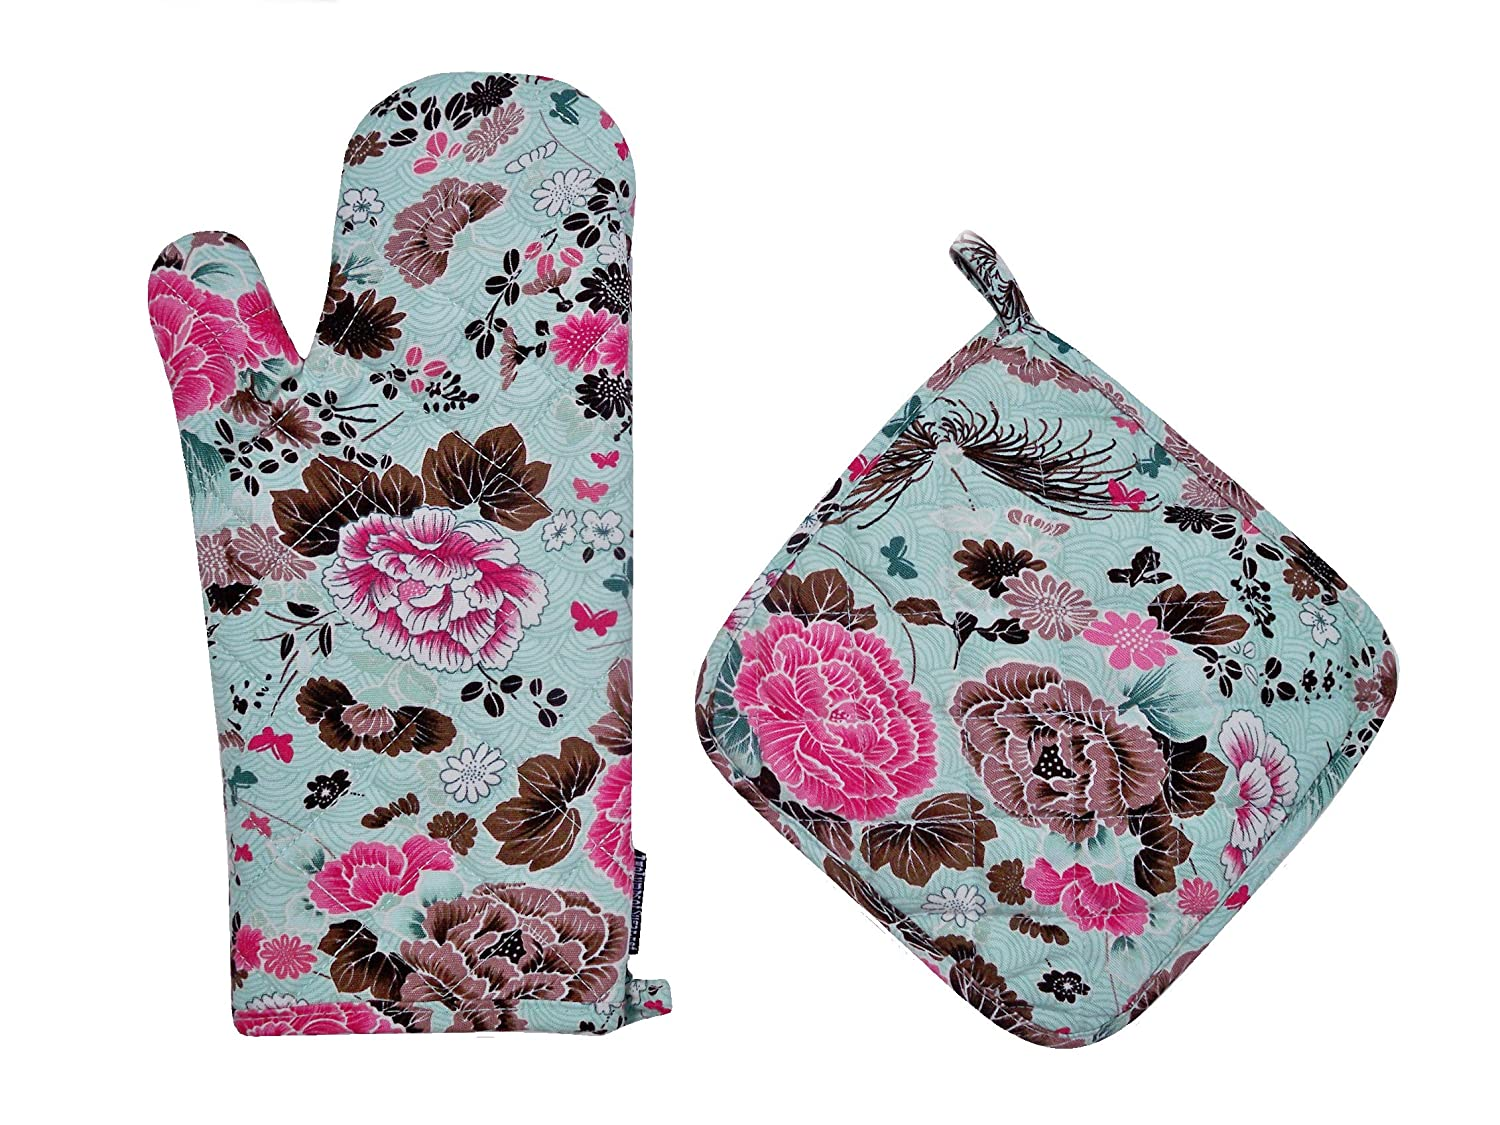 Two Lumps of Sugar Oven Mitt/Potholder Set, Asiana